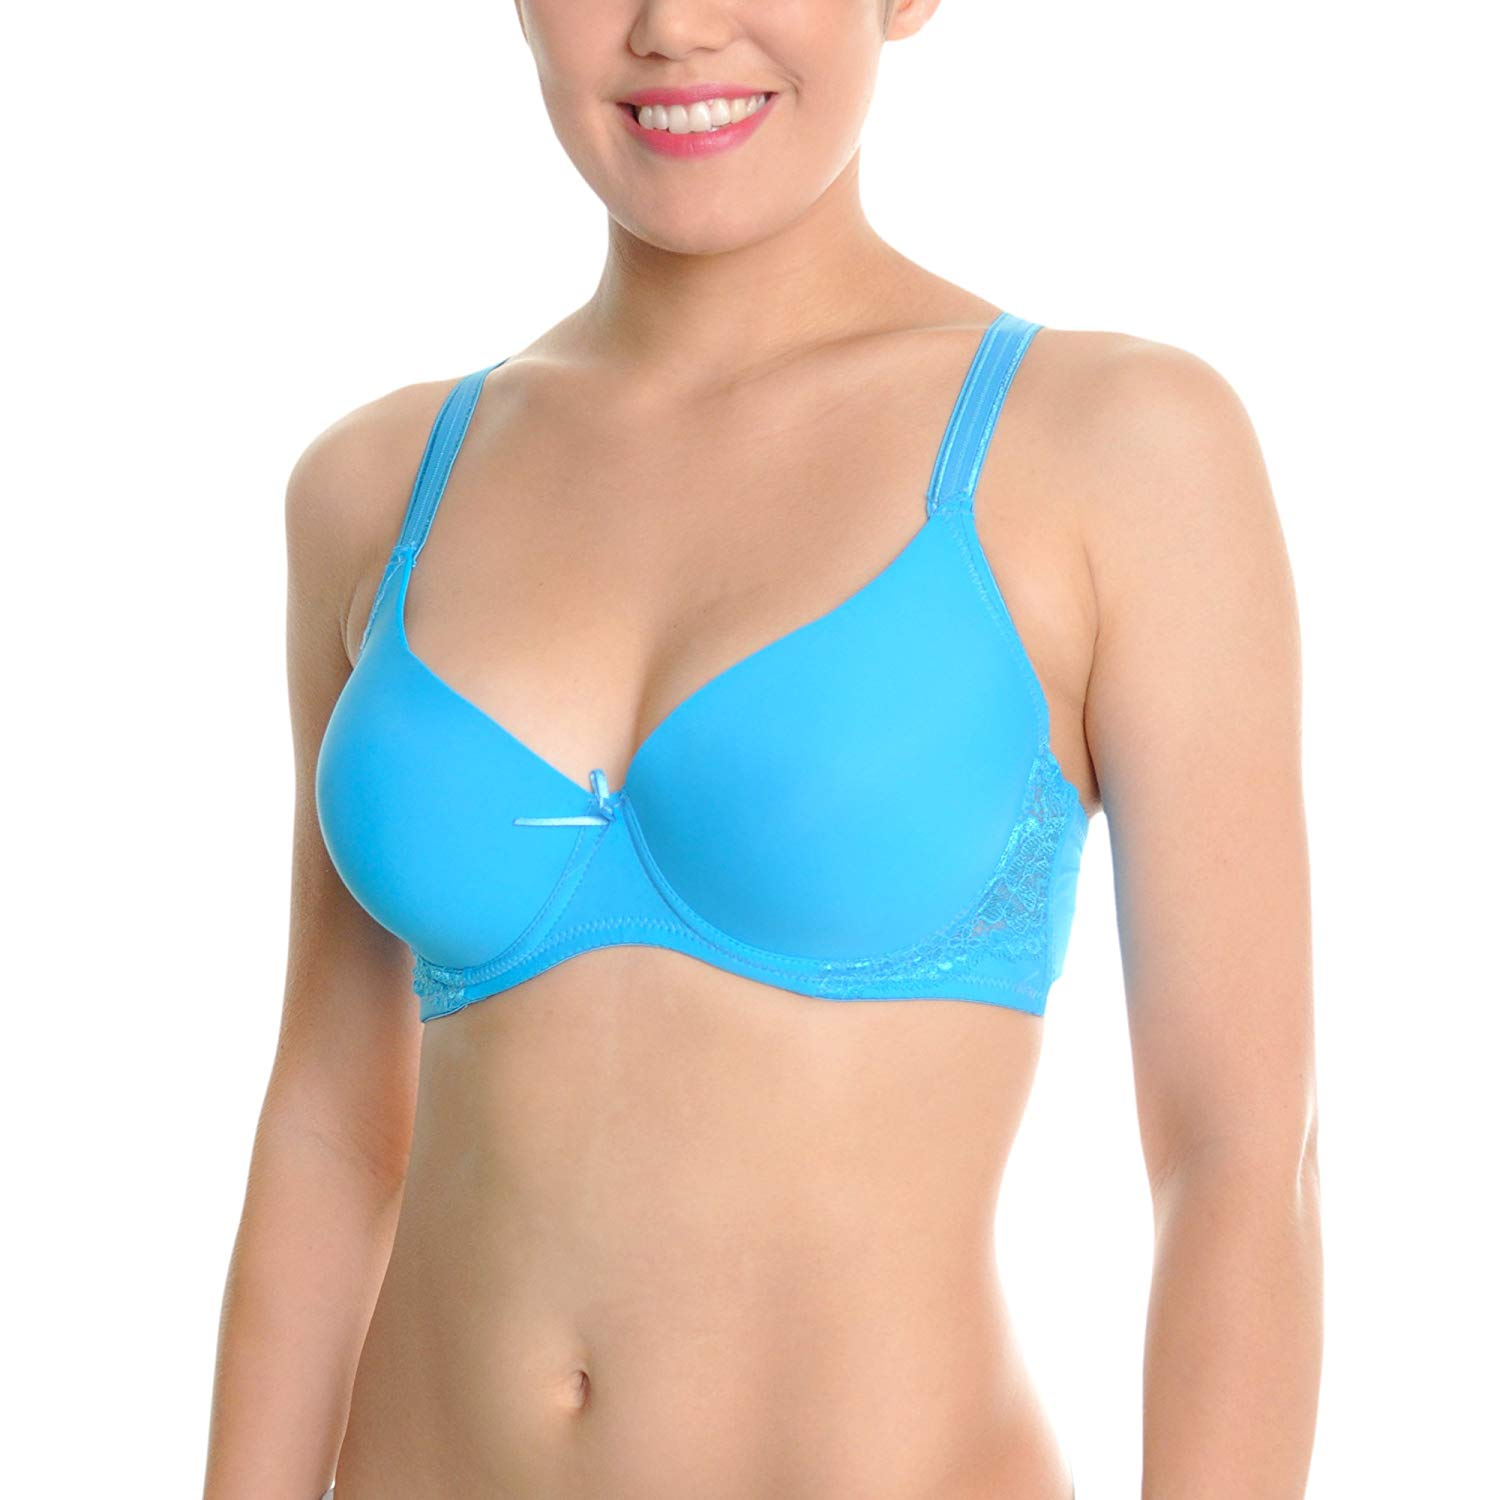 d0d0779b417 Get Quotations · Angelina Wired Full Support D-Cup Bras (6-Pack)